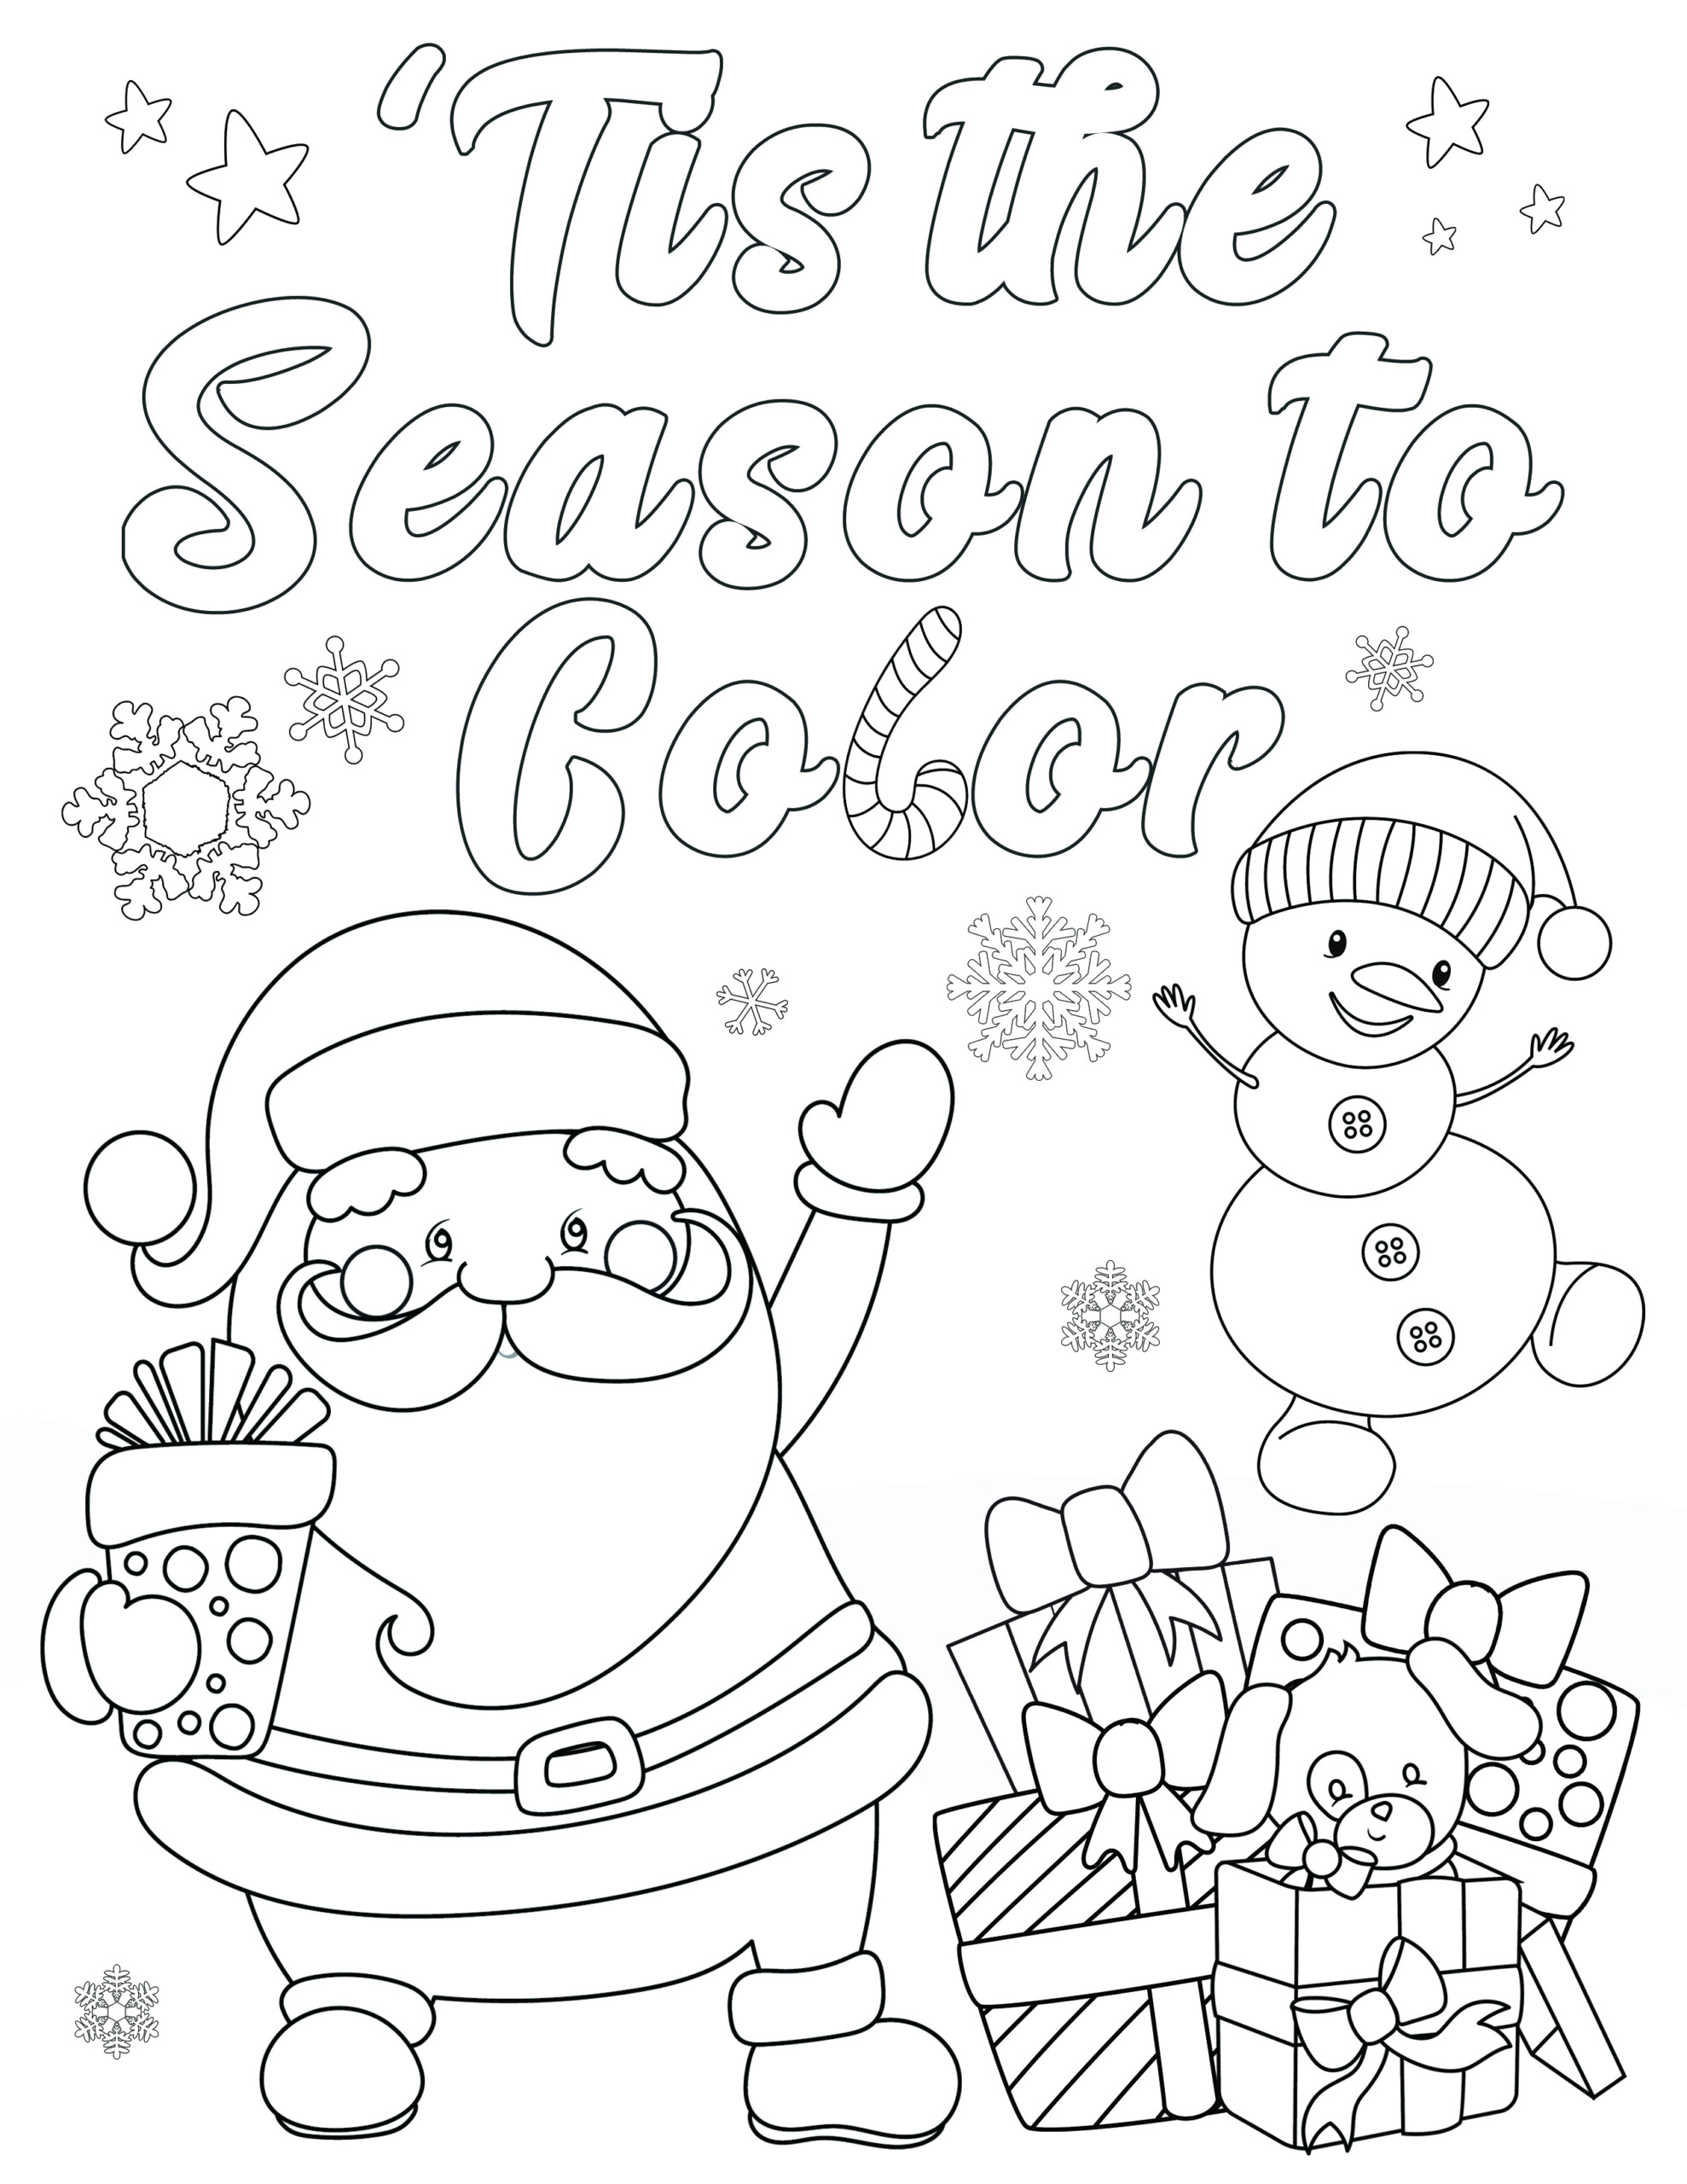 Free Christmas Coloring Pages For Adults And Kids